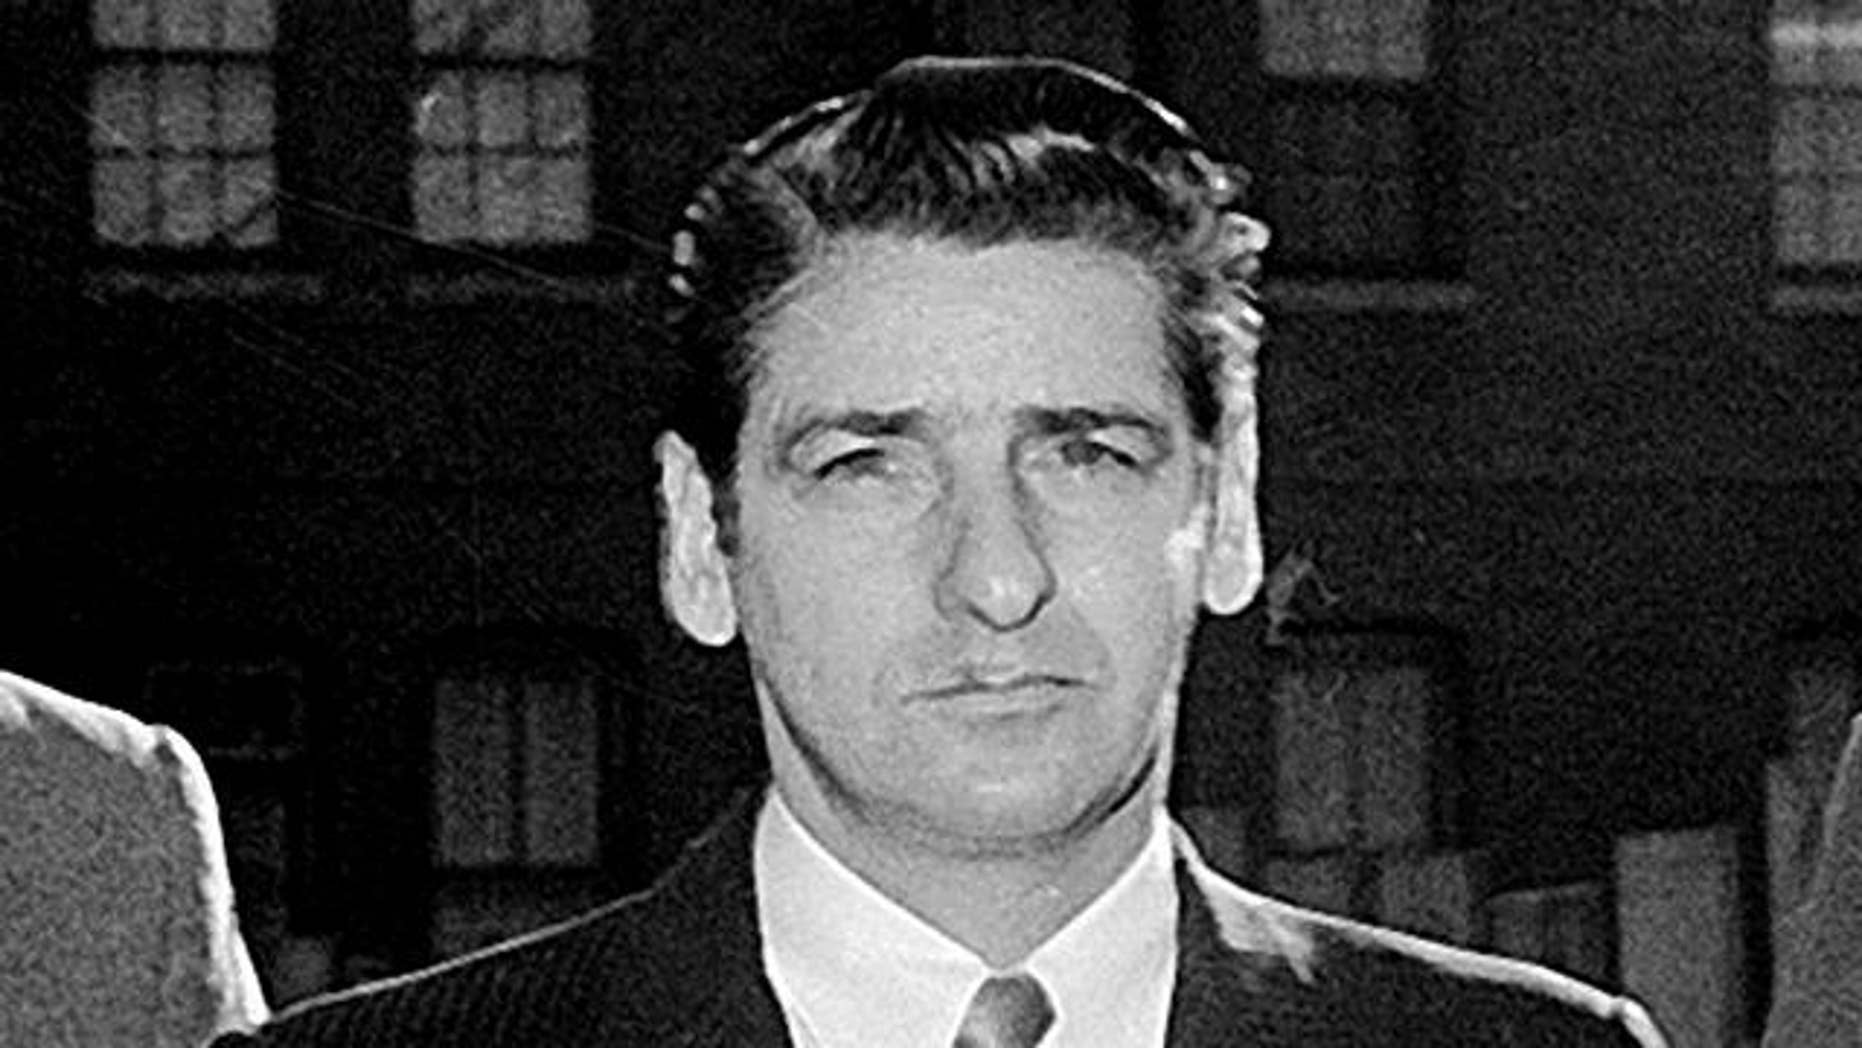 """Albert DeSalvo was long suspected to be the """"Boston Strangler,"""" who authorities say murdered 13 women in the area in the early 1960s. DeSalvo, however, was never charged with the killings and died in prison in 1967."""